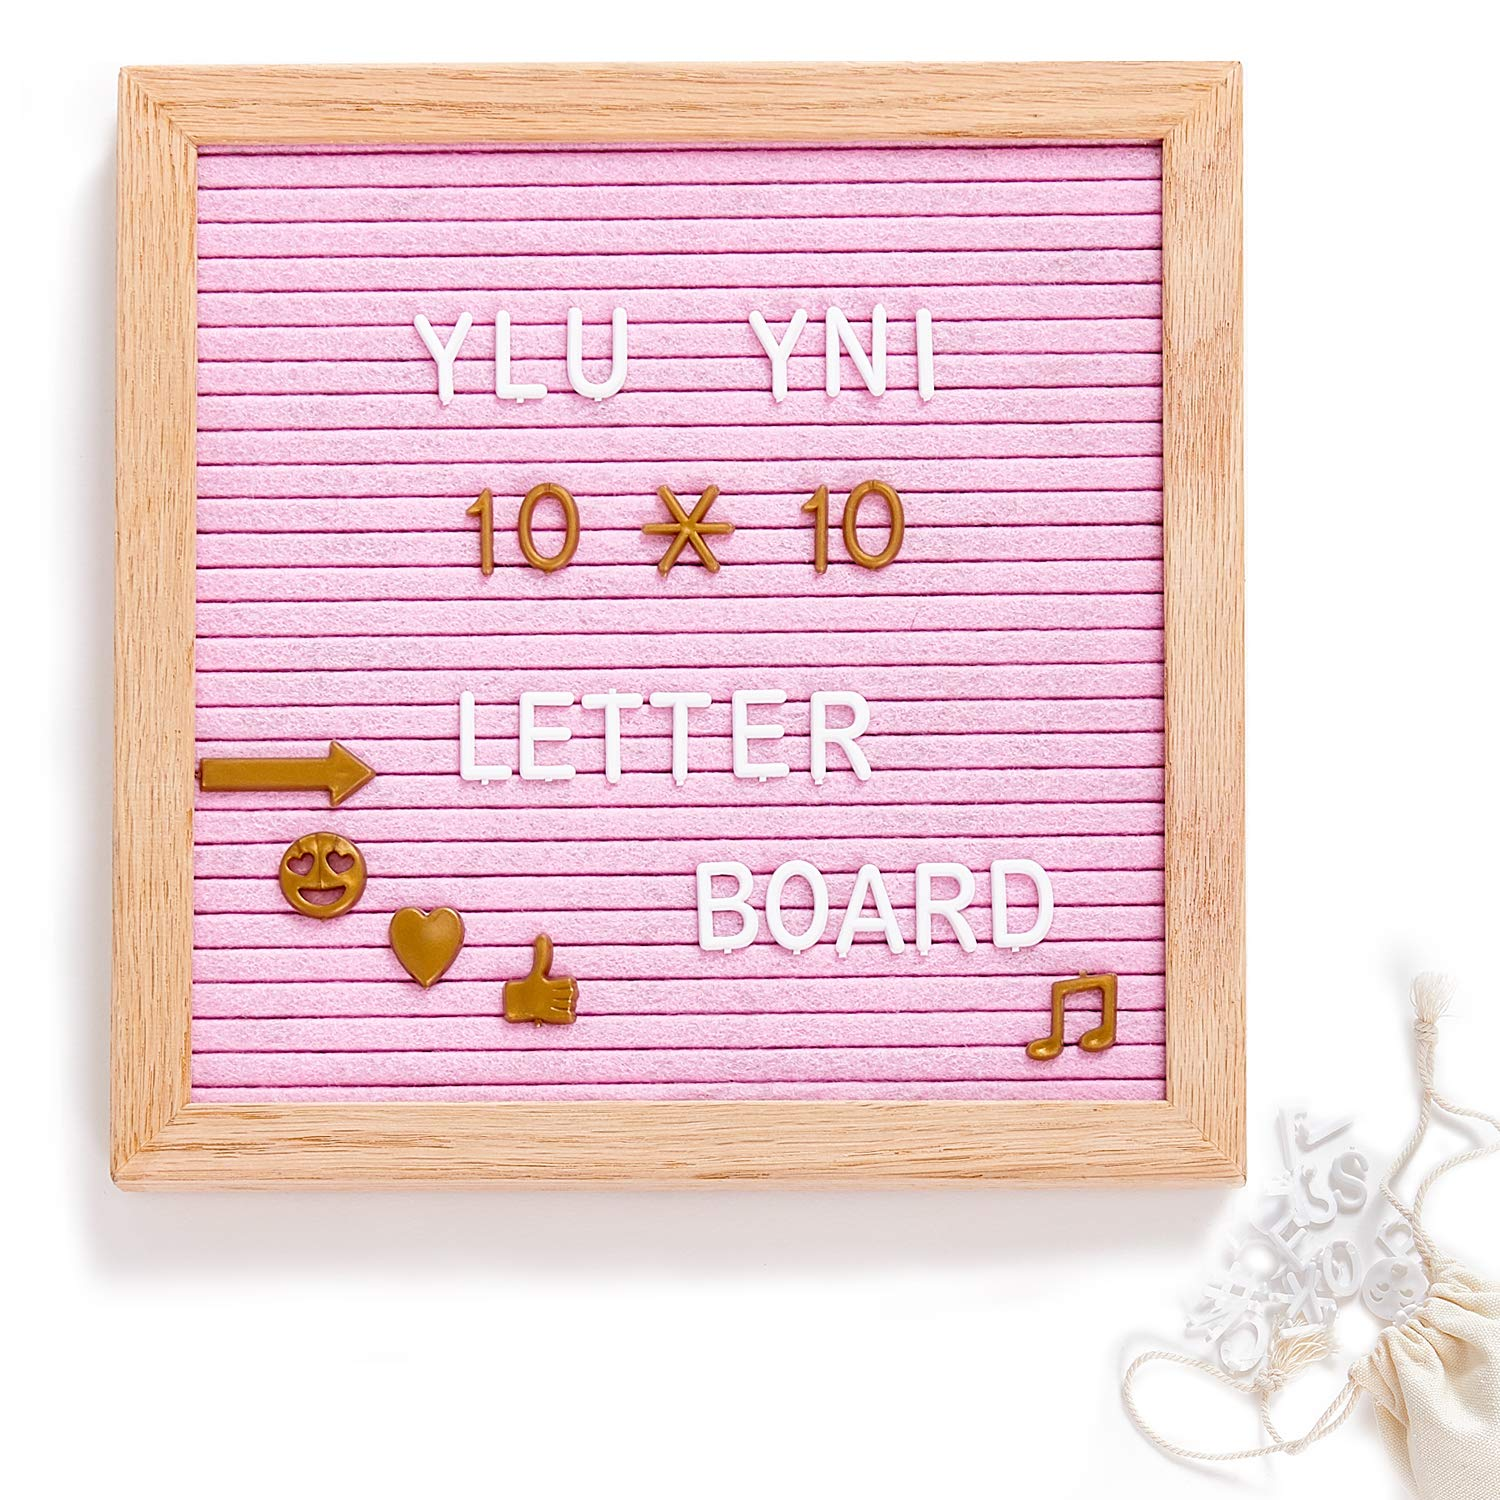 Ylu Yni Pink Letter Board 10x10'' Quote Board with Letters, Felt Letter Board with 346 Plastic Letters(White+ Gold)